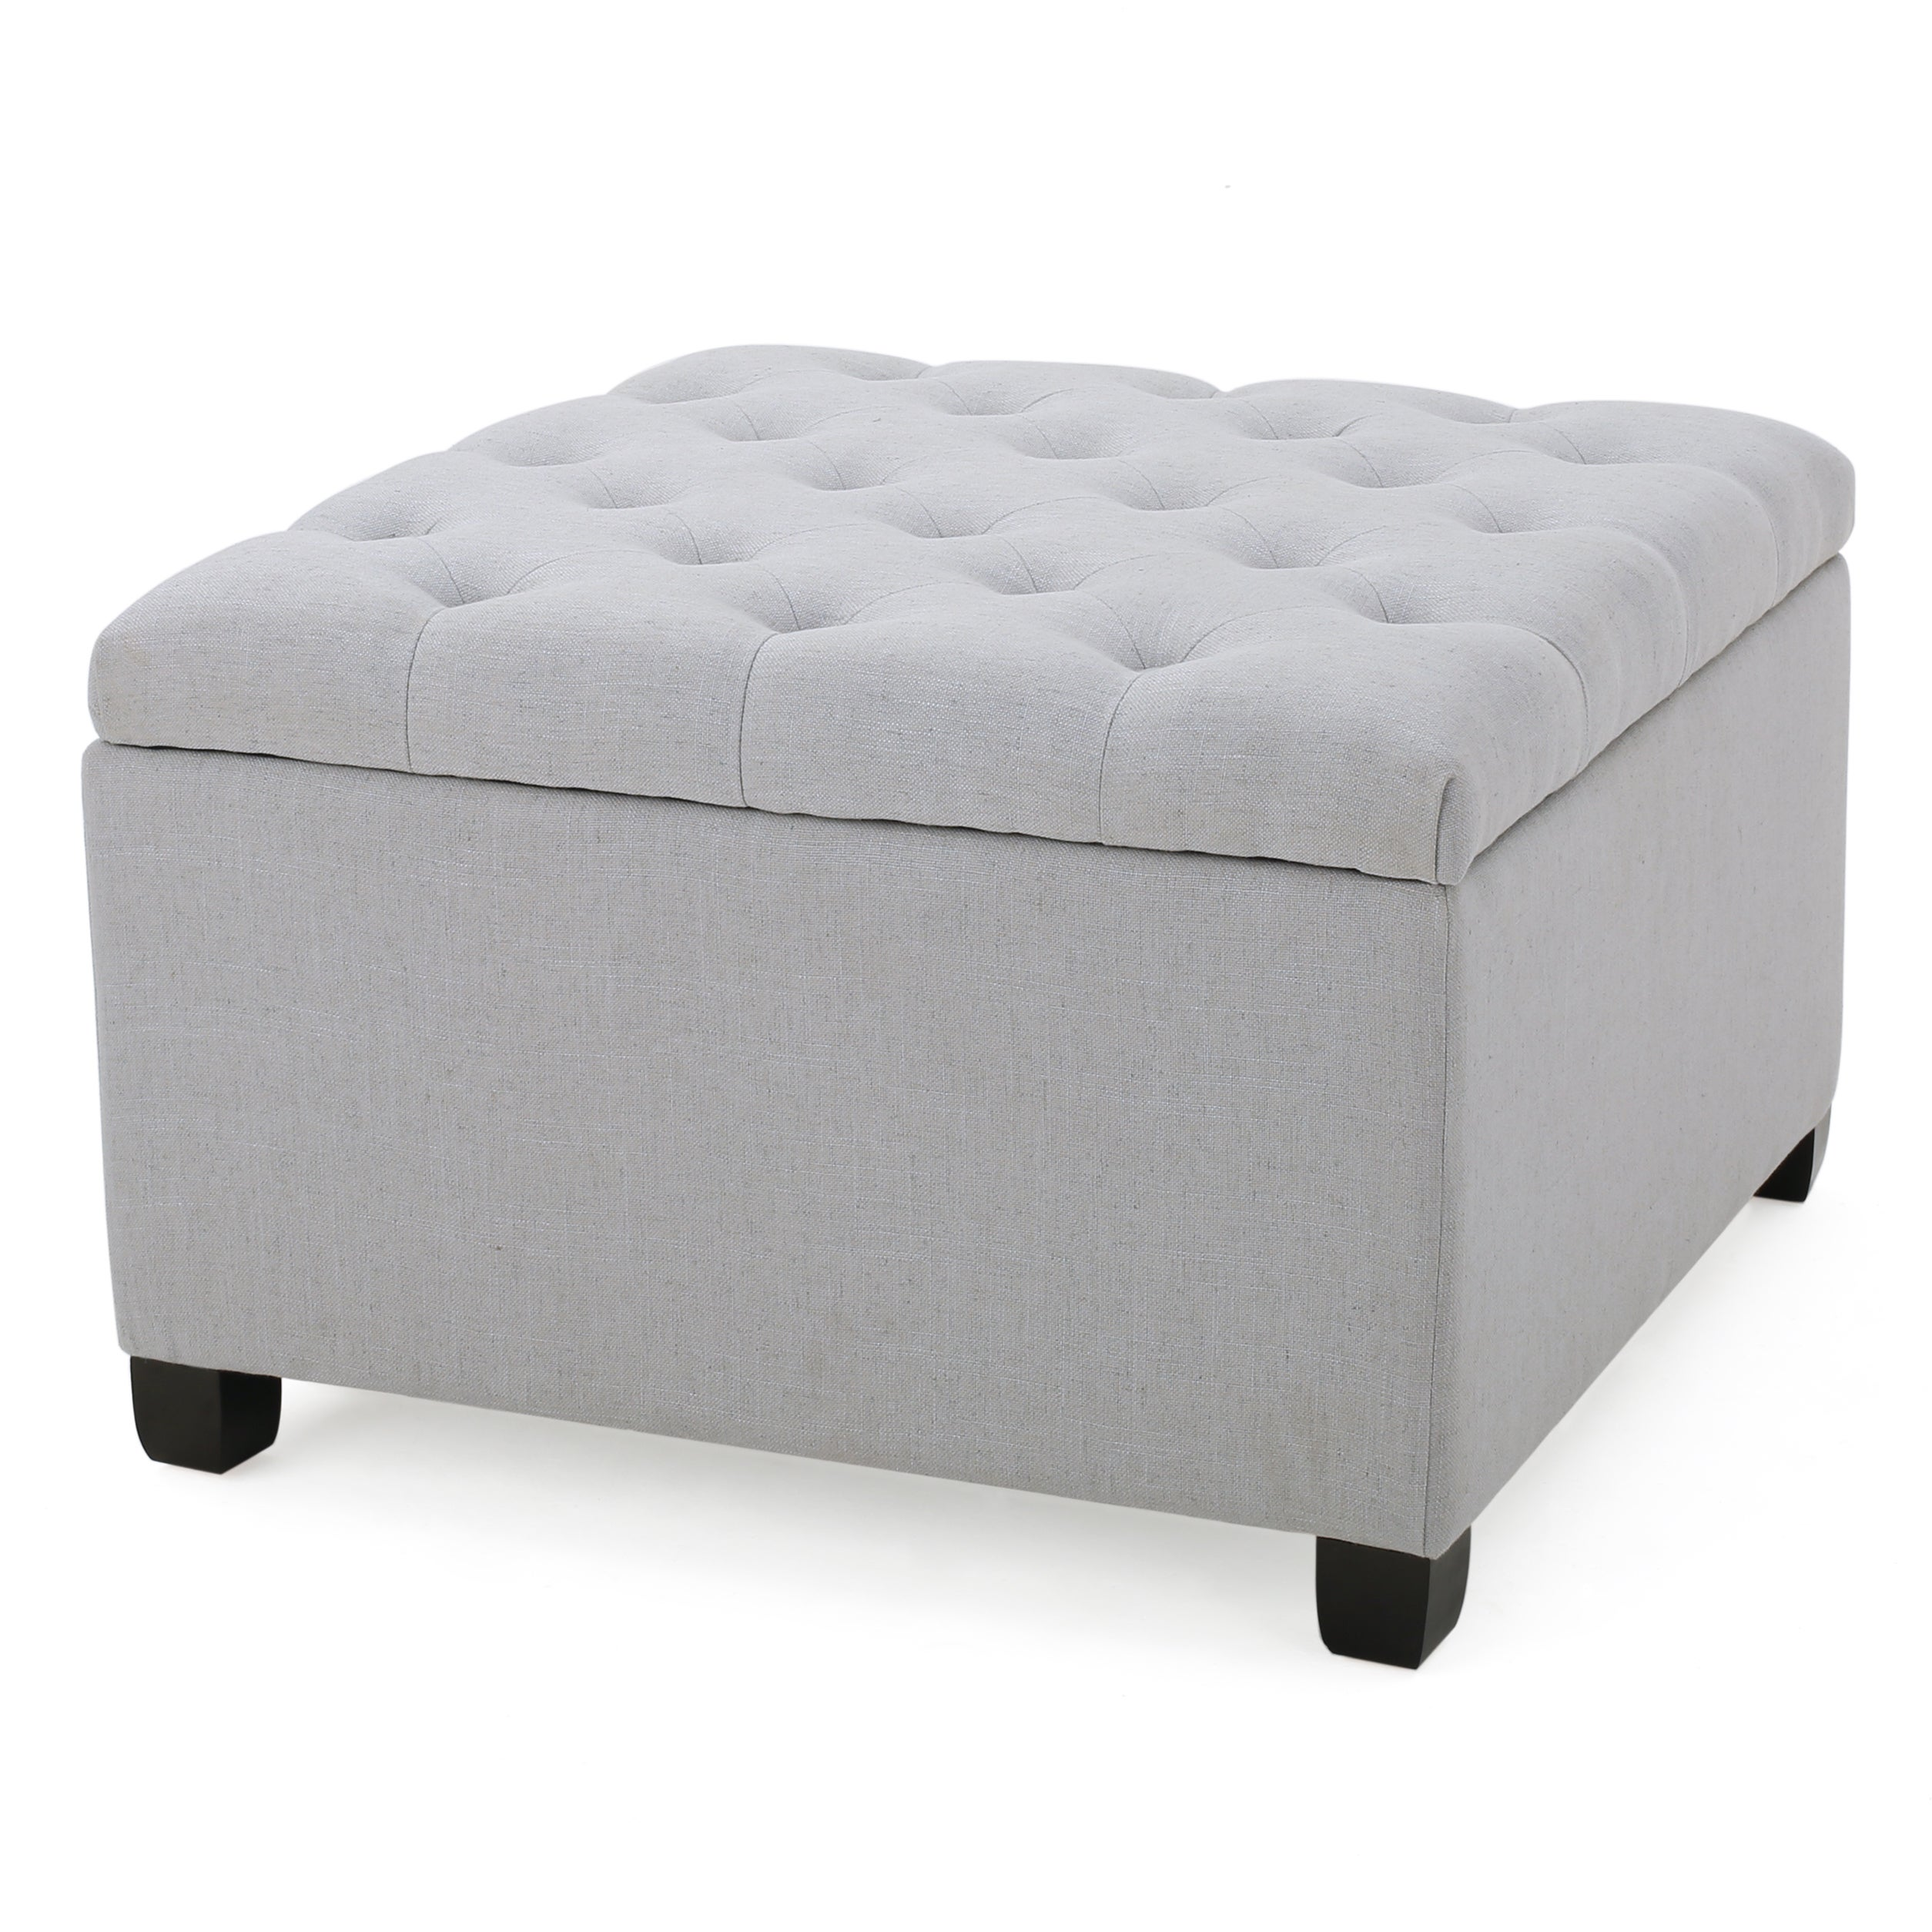 Shop Kane Tufted Button Storage Ottoman by Christopher Knight Home - Free Shipping Today - Overstock.com - 12882214  sc 1 st  Overstock.com & Shop Kane Tufted Button Storage Ottoman by Christopher Knight Home ...